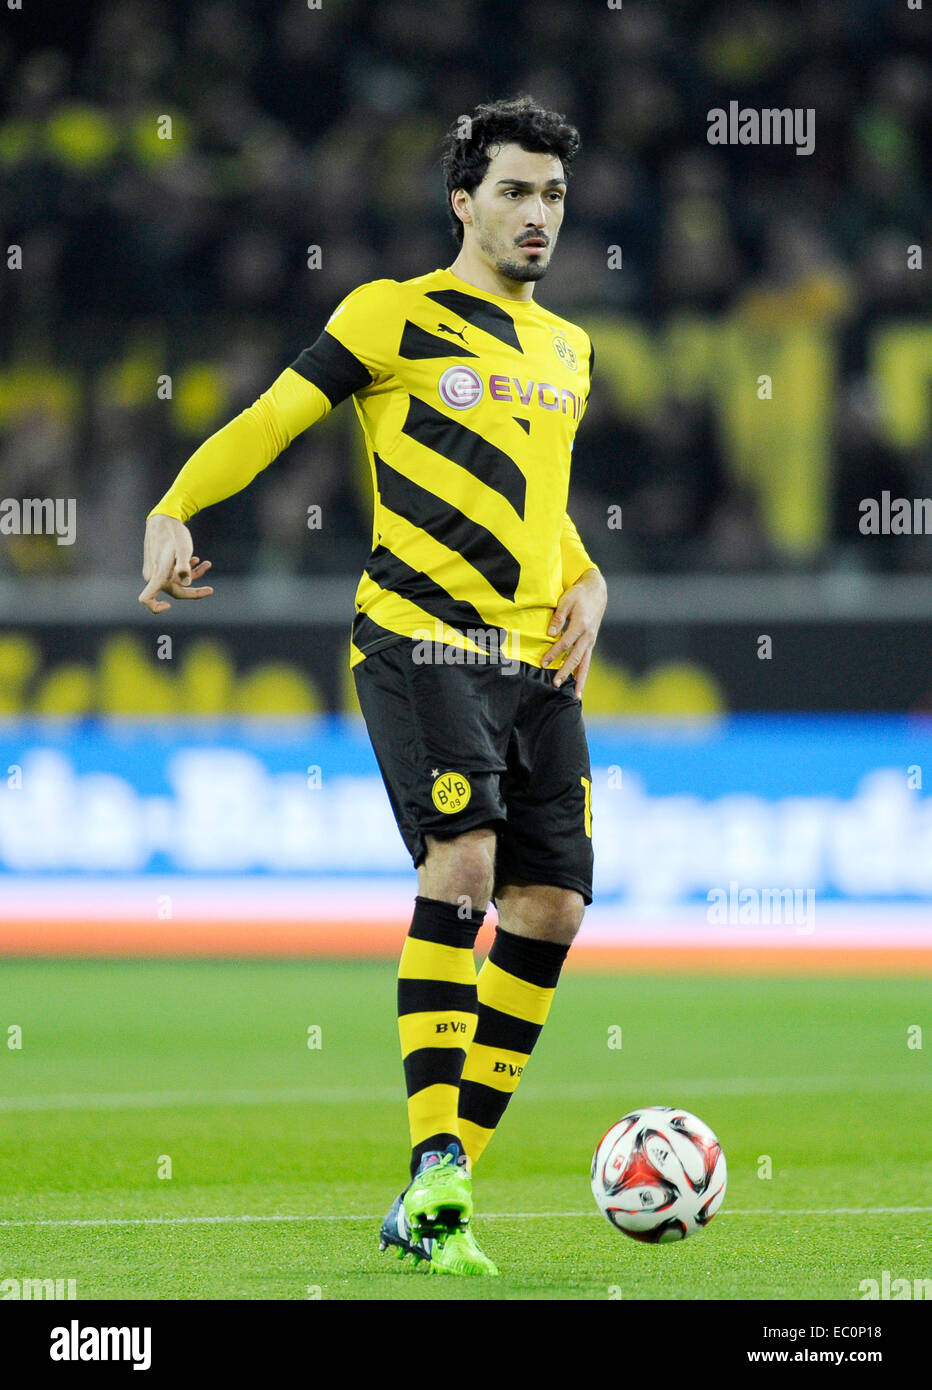 Dortmund Germany 5th Dec 2014 1 Fussball Bundesliga